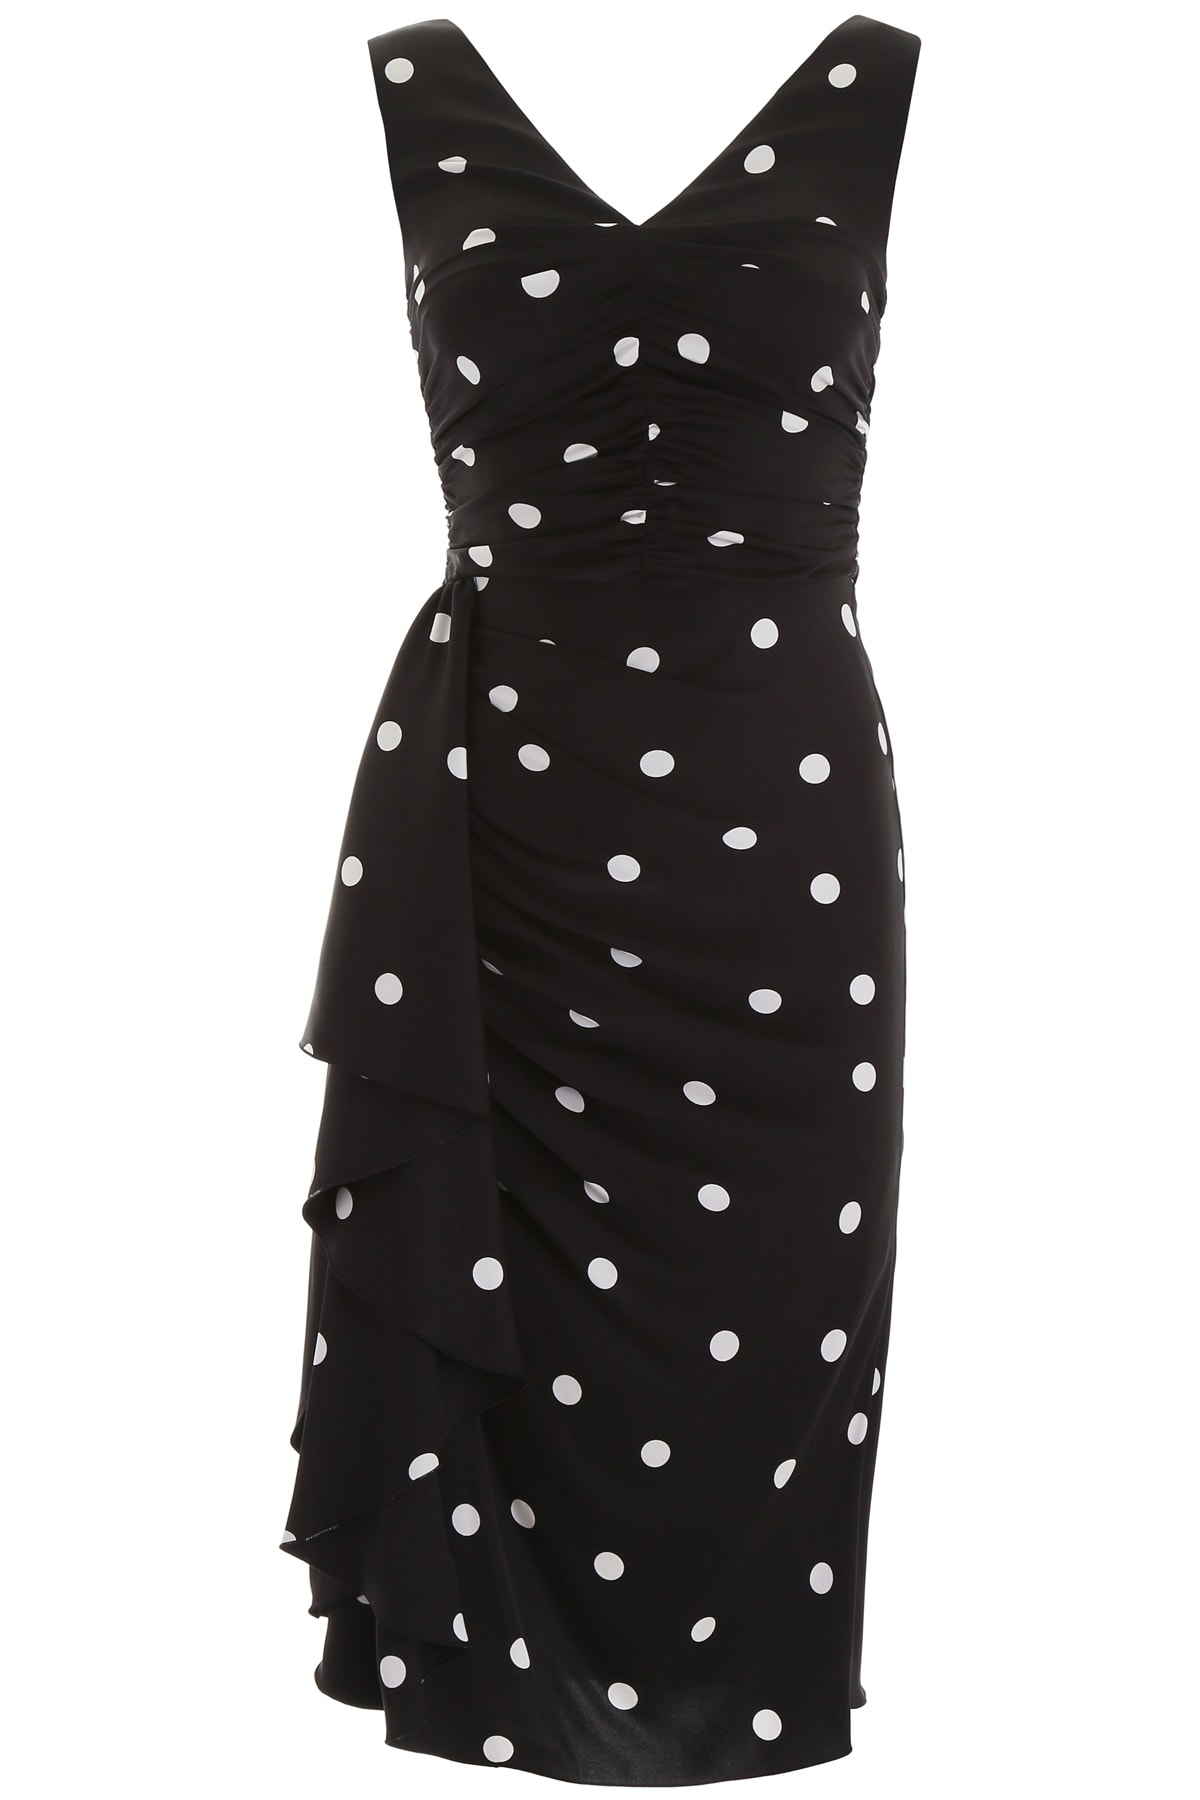 Dolce & Gabbana Polka Dots Dress